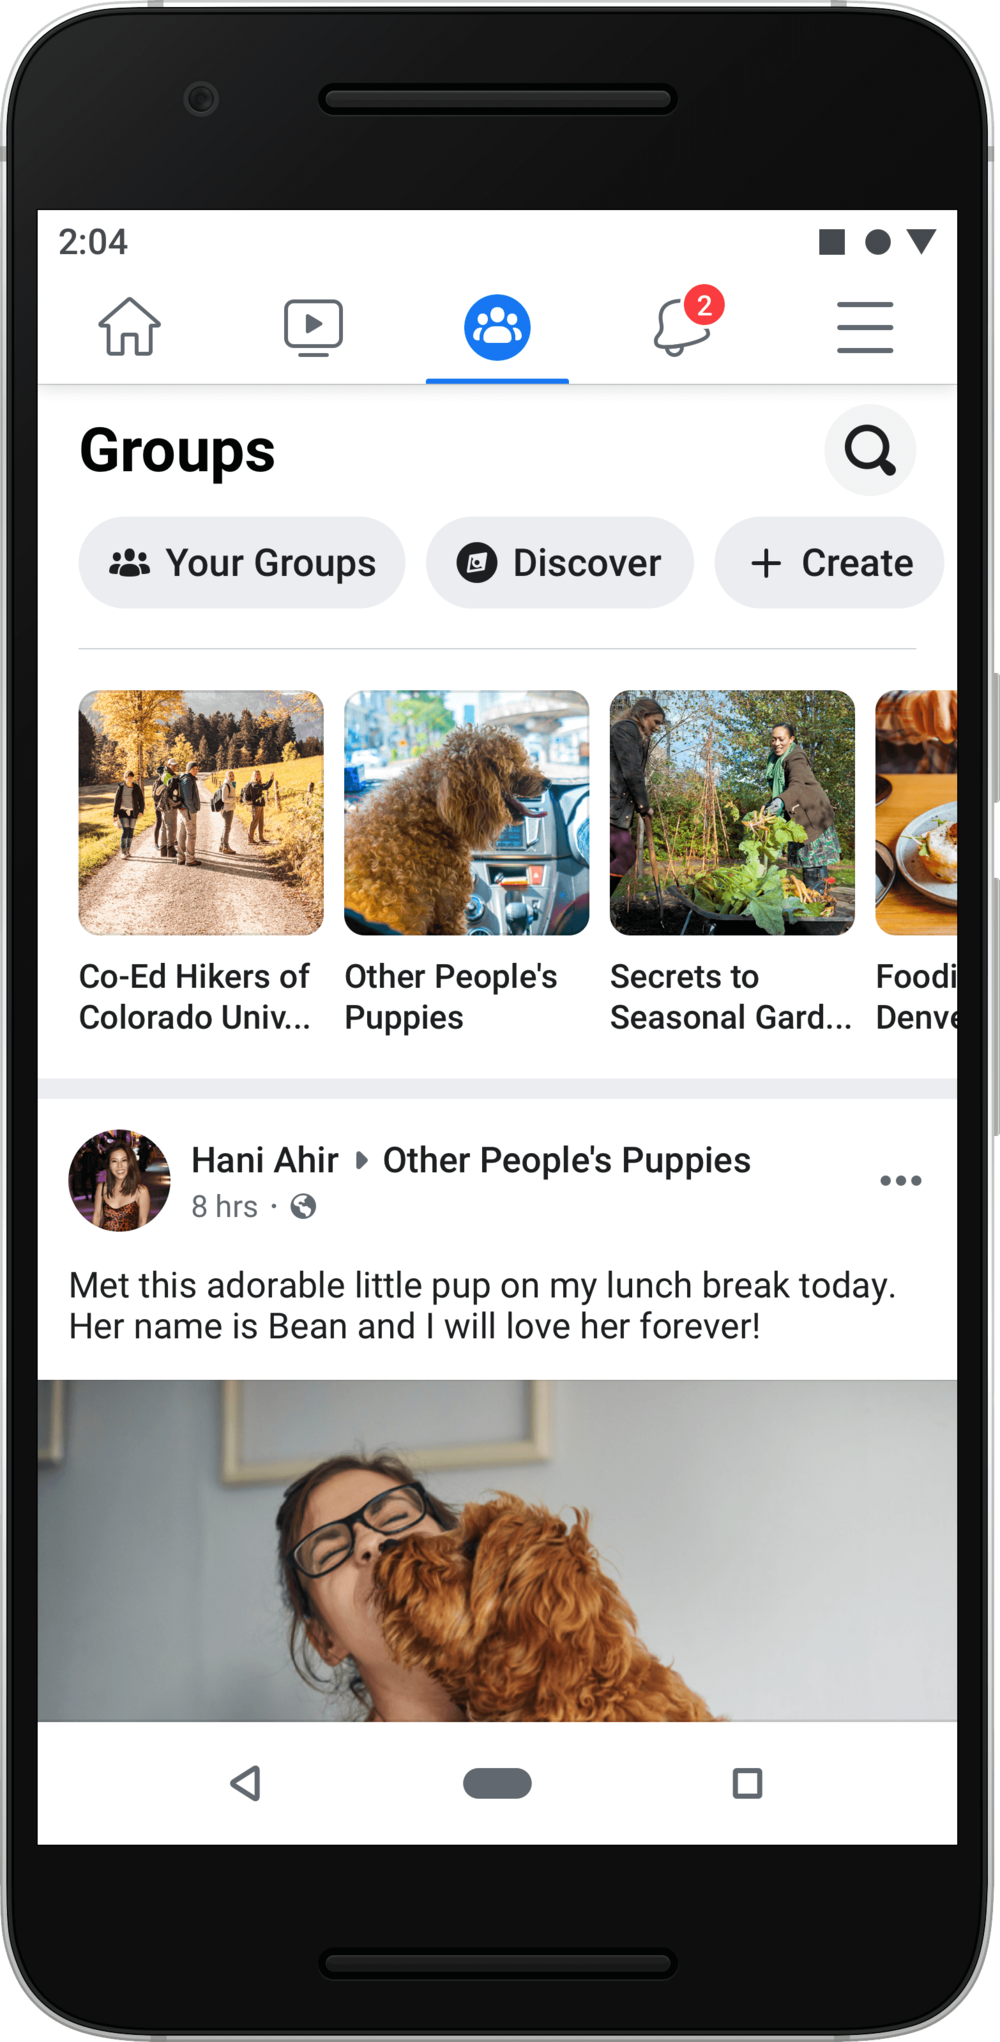 Redesign of the Facebook Groups tab in the mobile app. Desktop redesign to ship out in the coming months.